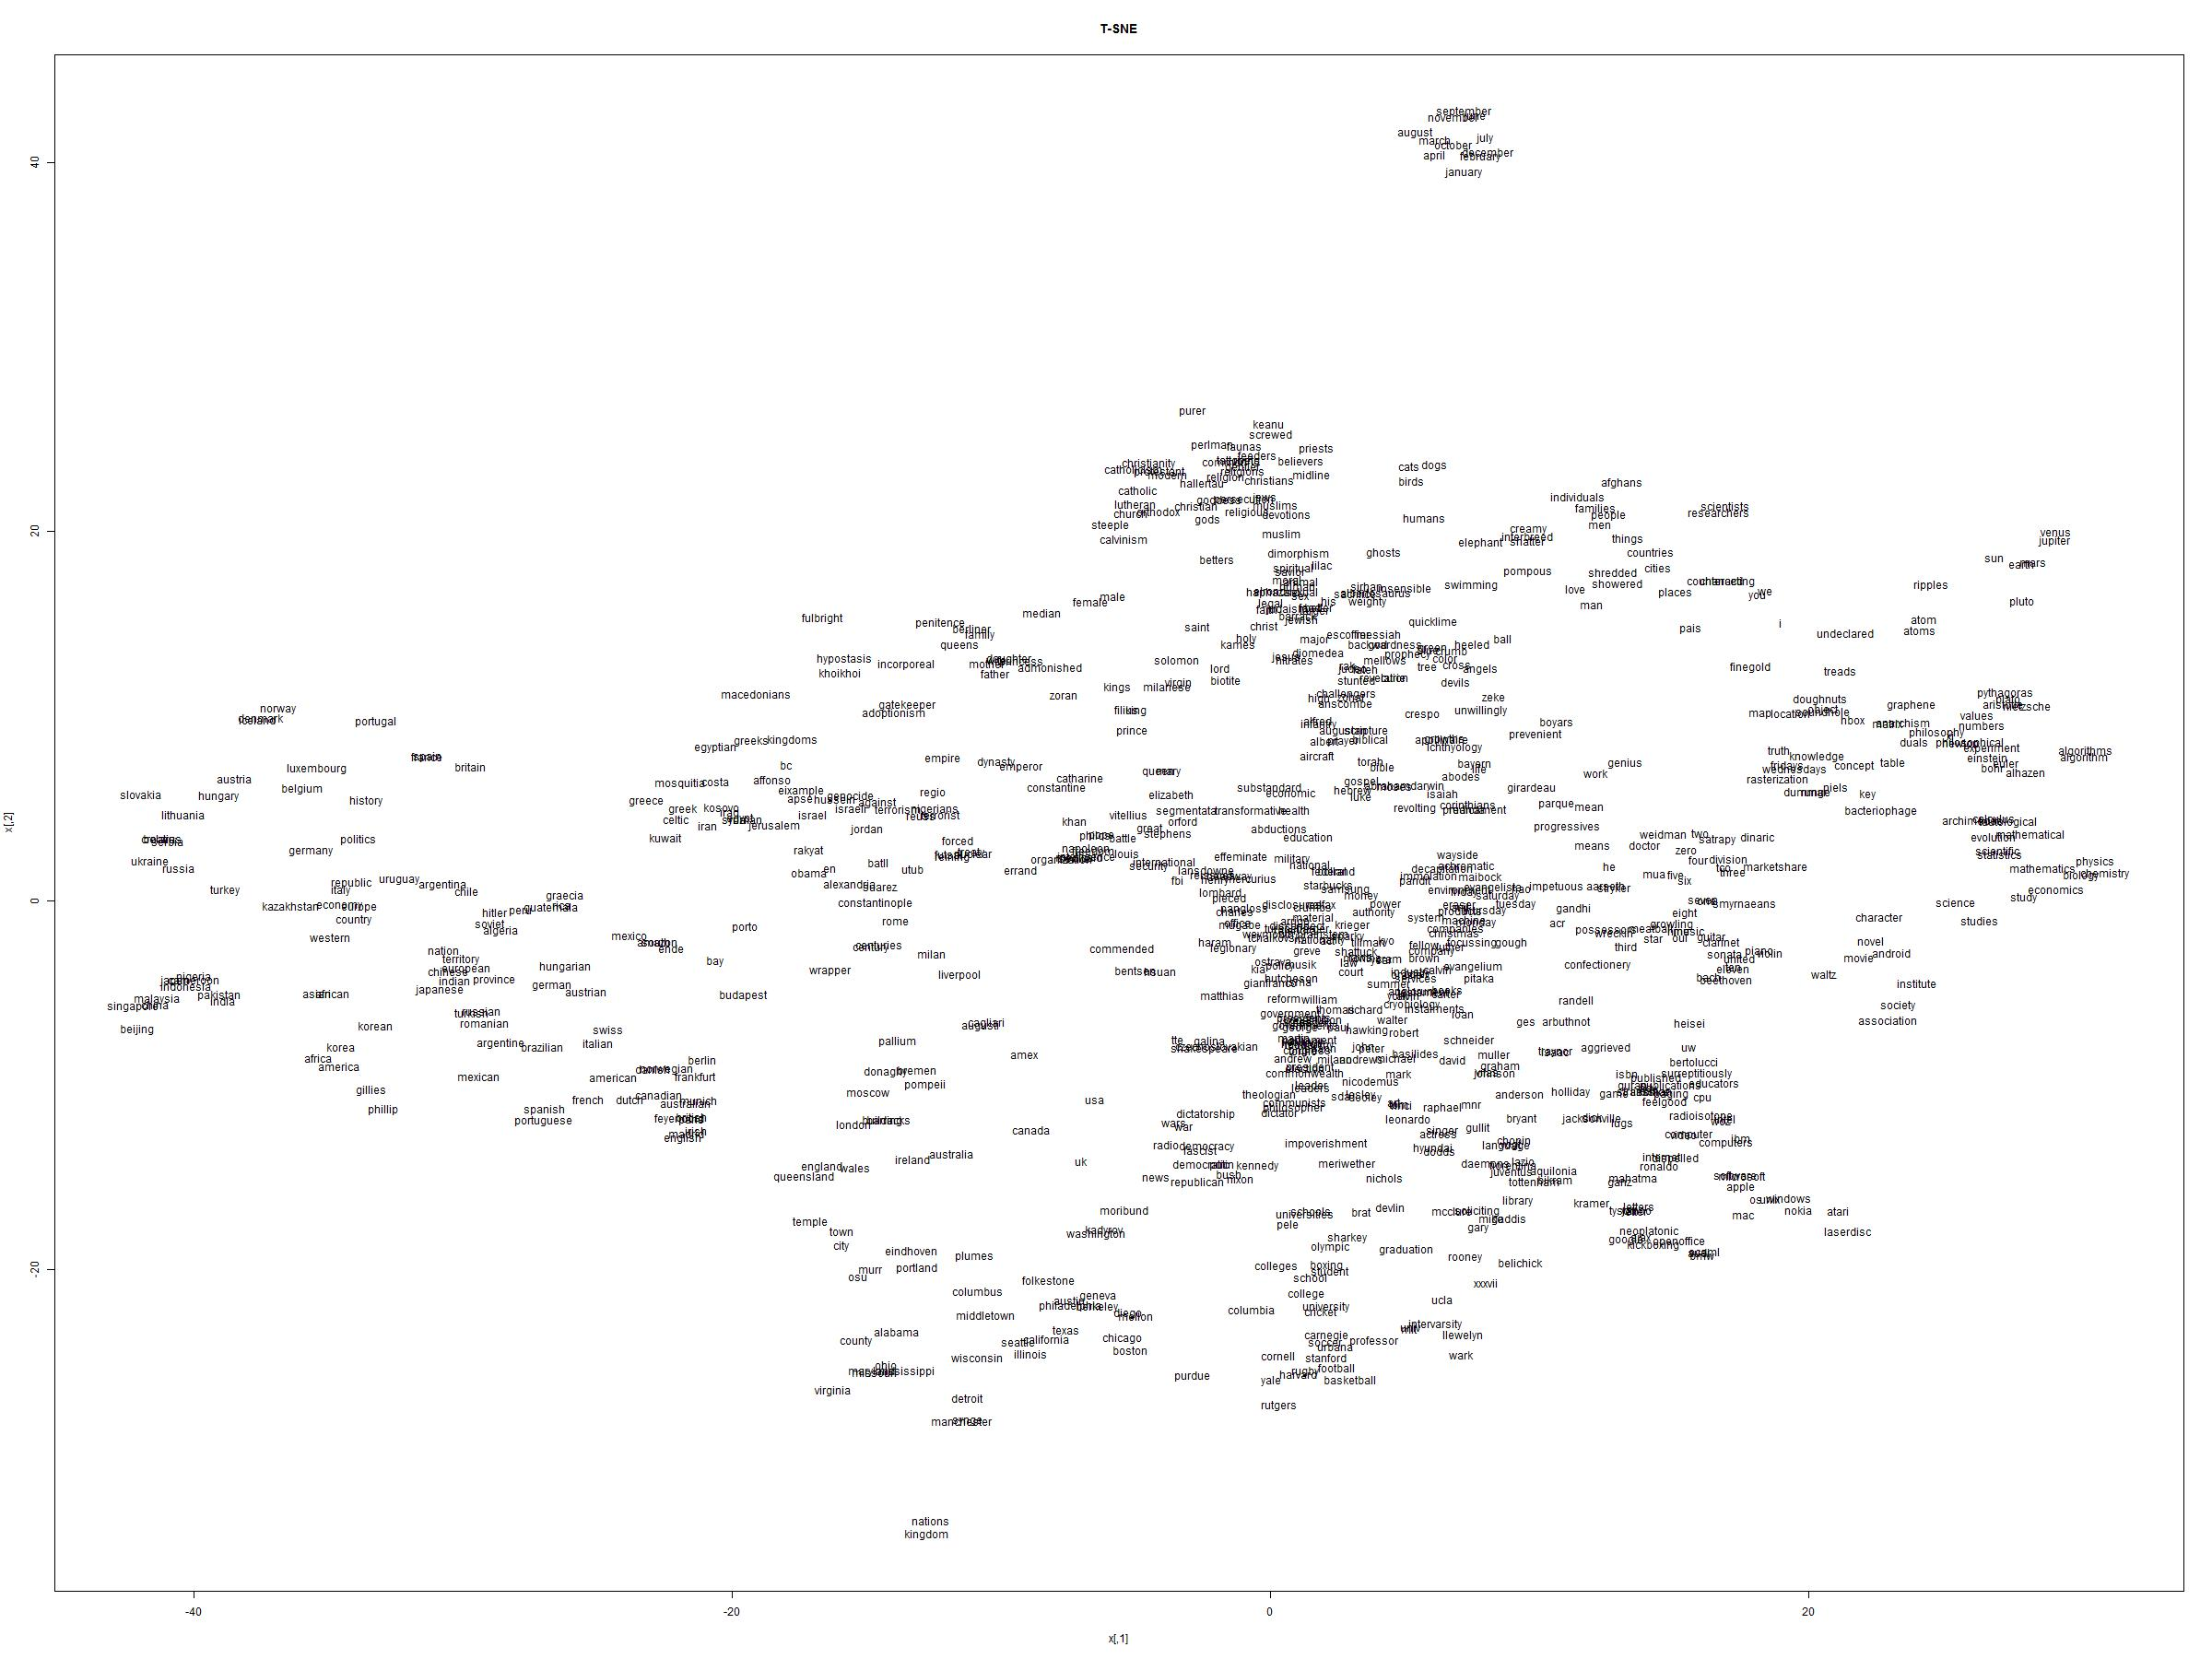 Visualization of High Dimensional Data using t-SNE with R - CodeProject